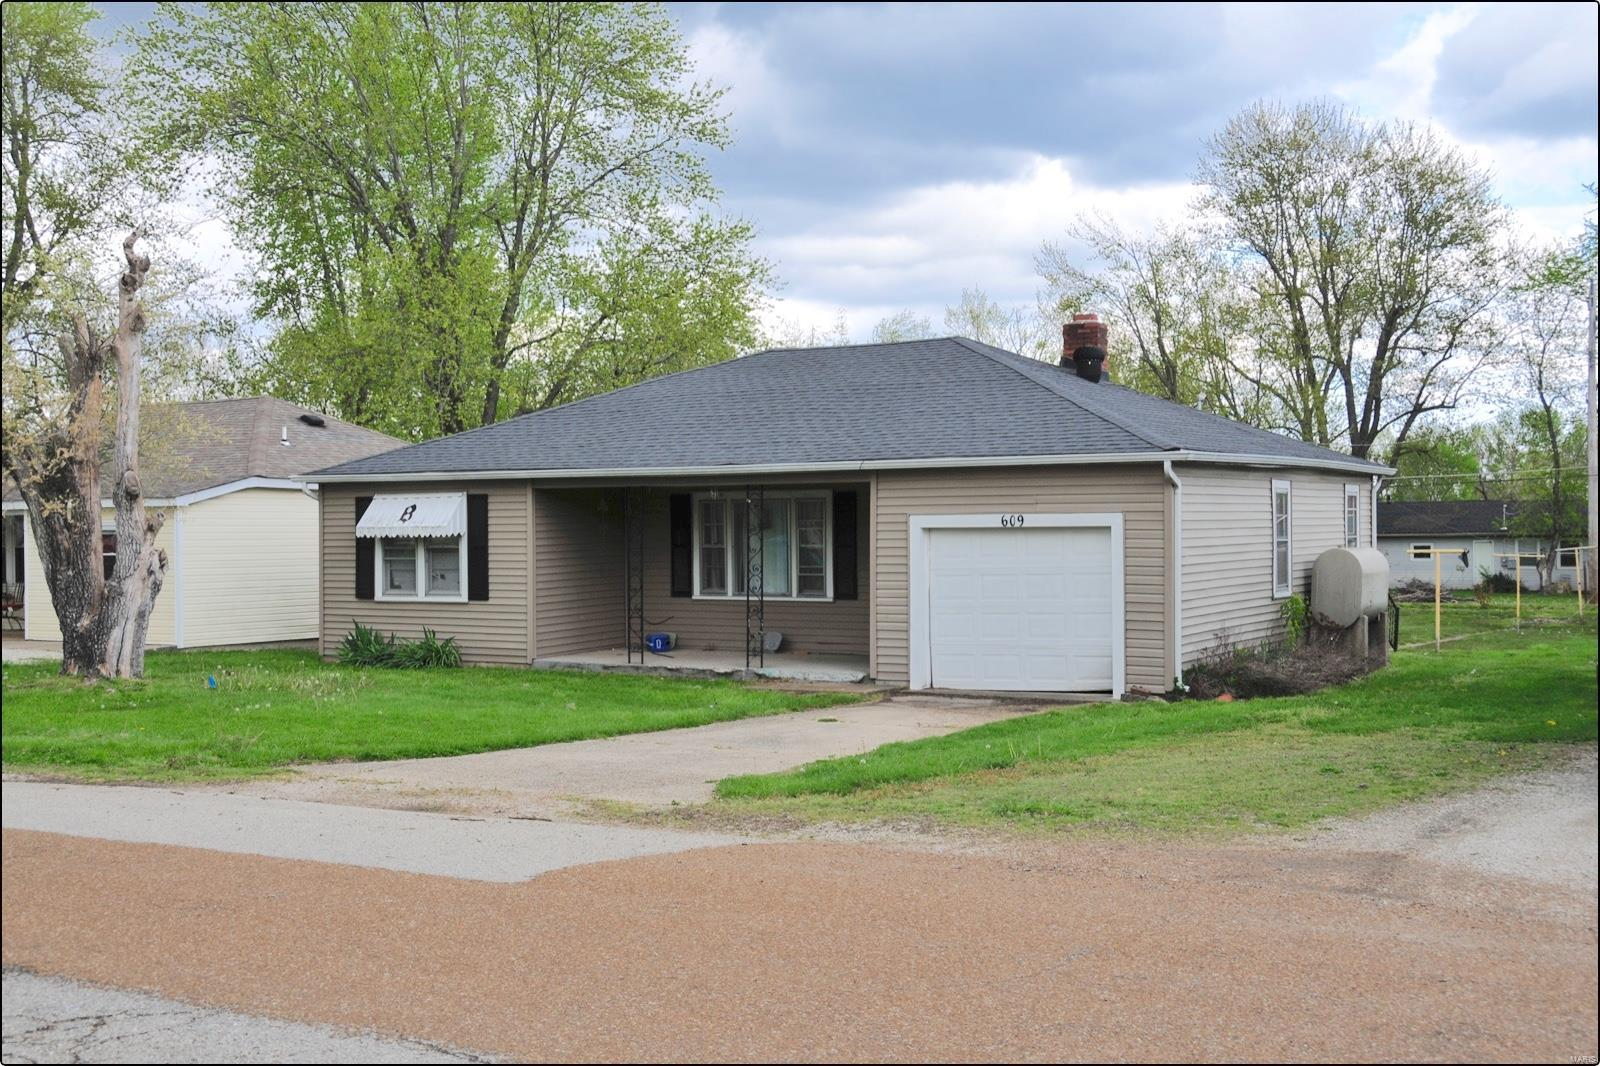 609 S. TAYLOR AVE. Property Photo - Belle, MO real estate listing